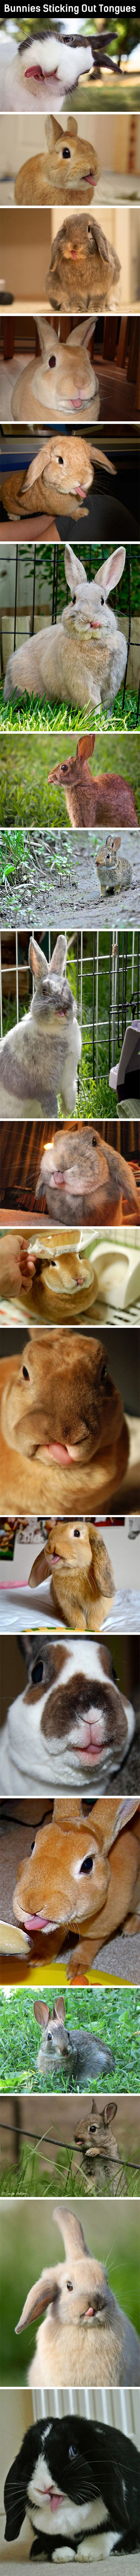 Related pictures split tongue jpg pictures to pin on pinterest -  Bunnies Sticking Out Tongues It Will Melt Your Heart Find Even